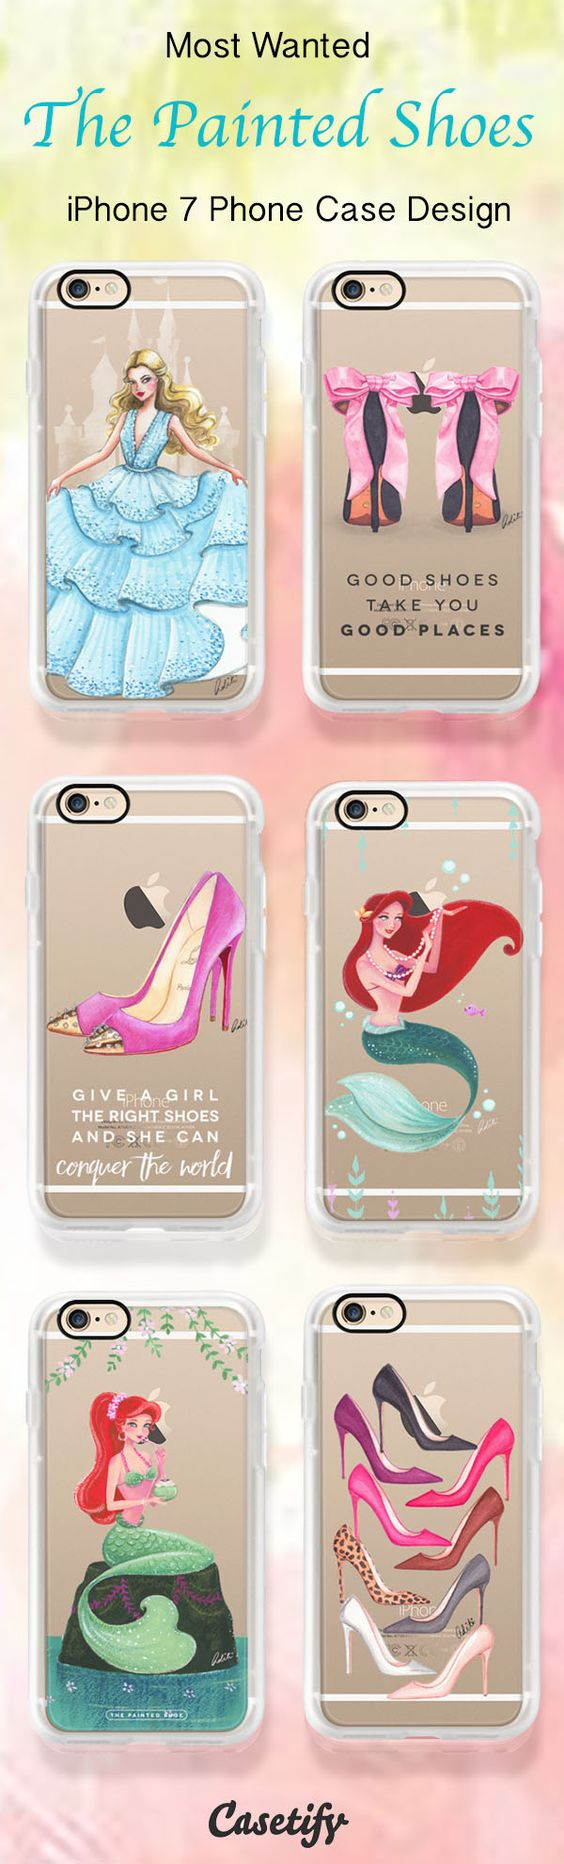 Most wanted iPhone 7 case designs by The Painted Shoes - also available for iPhone 6. Shop them all here > https://www.casetify.com/thepaintedshoe/collection